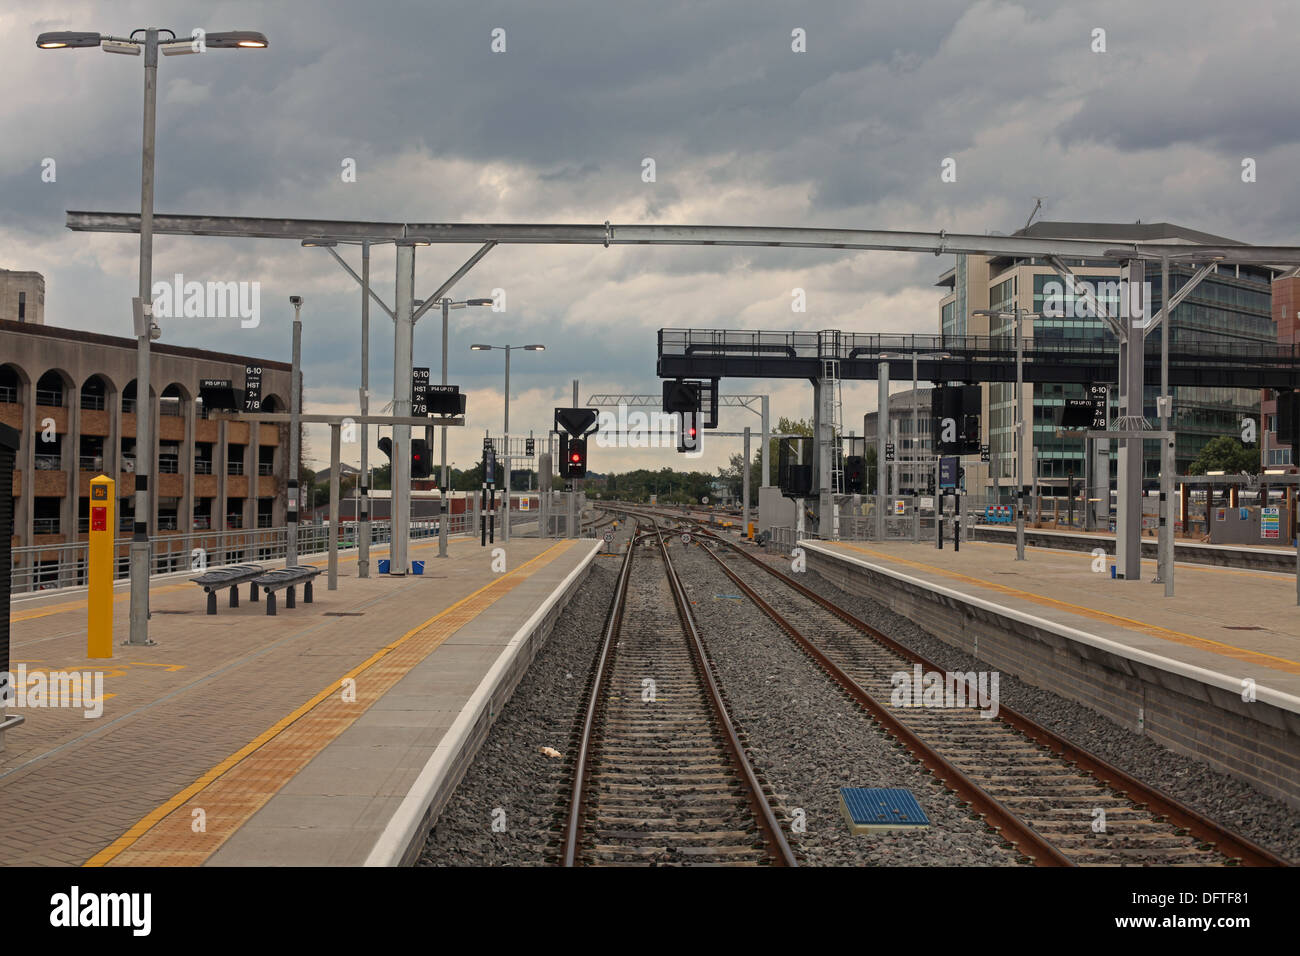 Drivers eye view of the new signals and platforms at Reading station with all signals showing Red aspects. - Stock Image